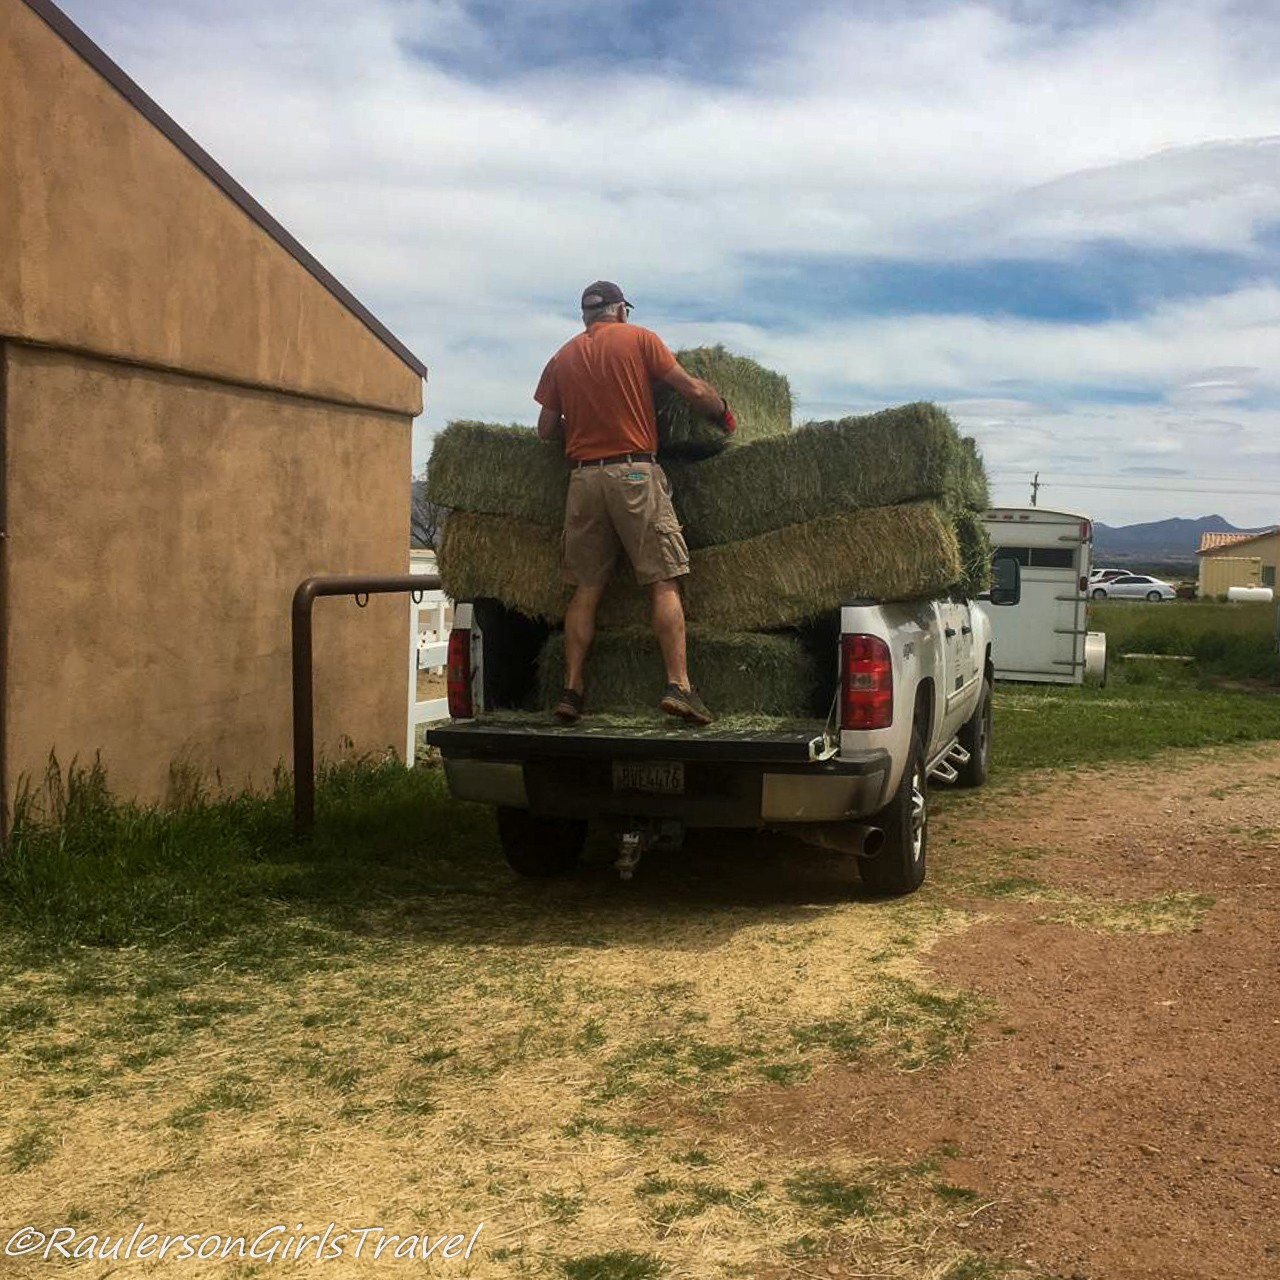 Picking up bales of hay for the horses